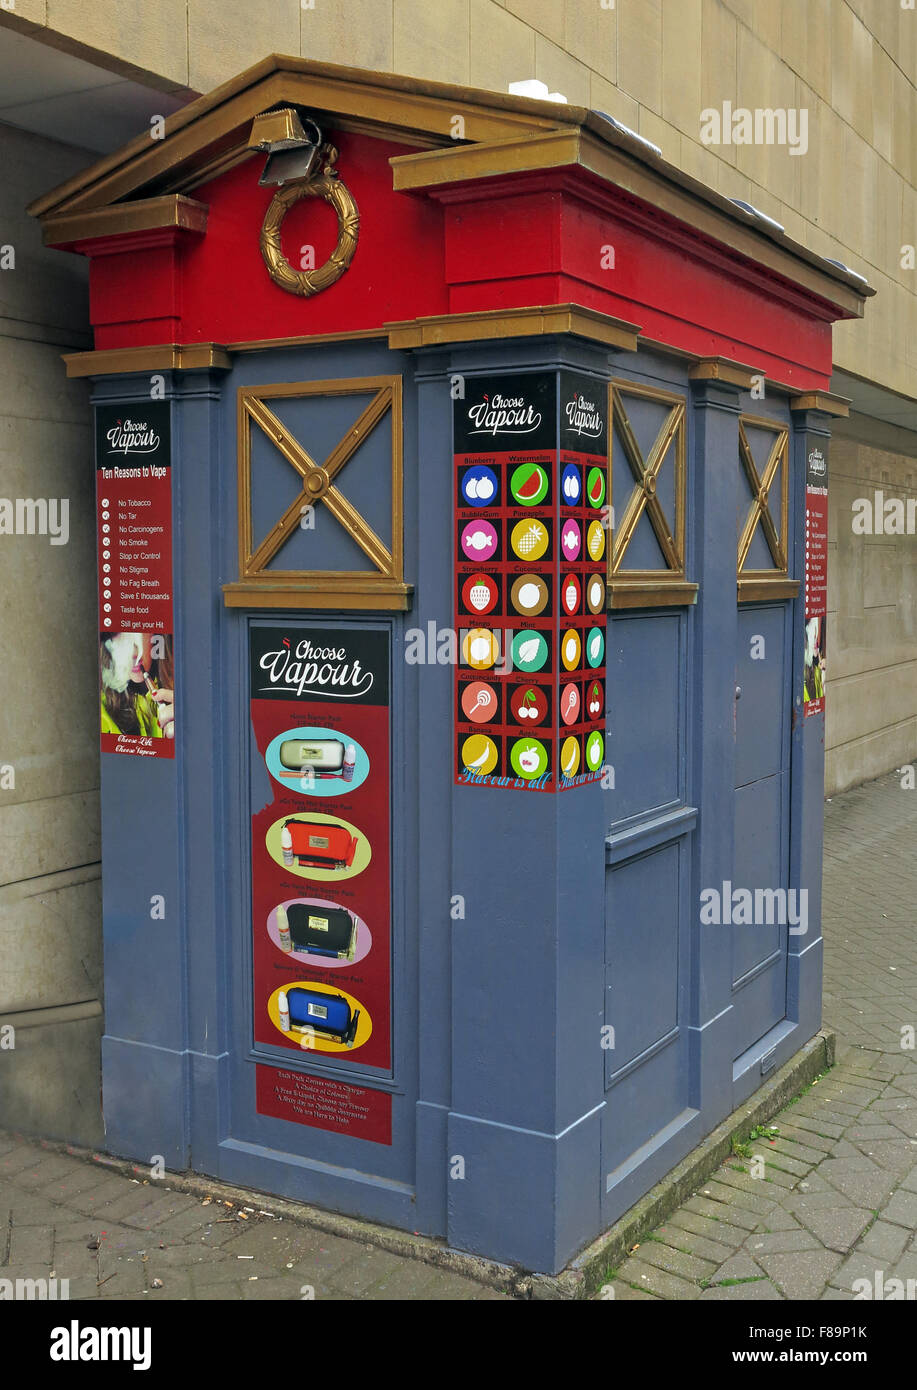 Edinburgh policebox now a Vaping shop,Edinburgh,Scotland,UK - Stock Image